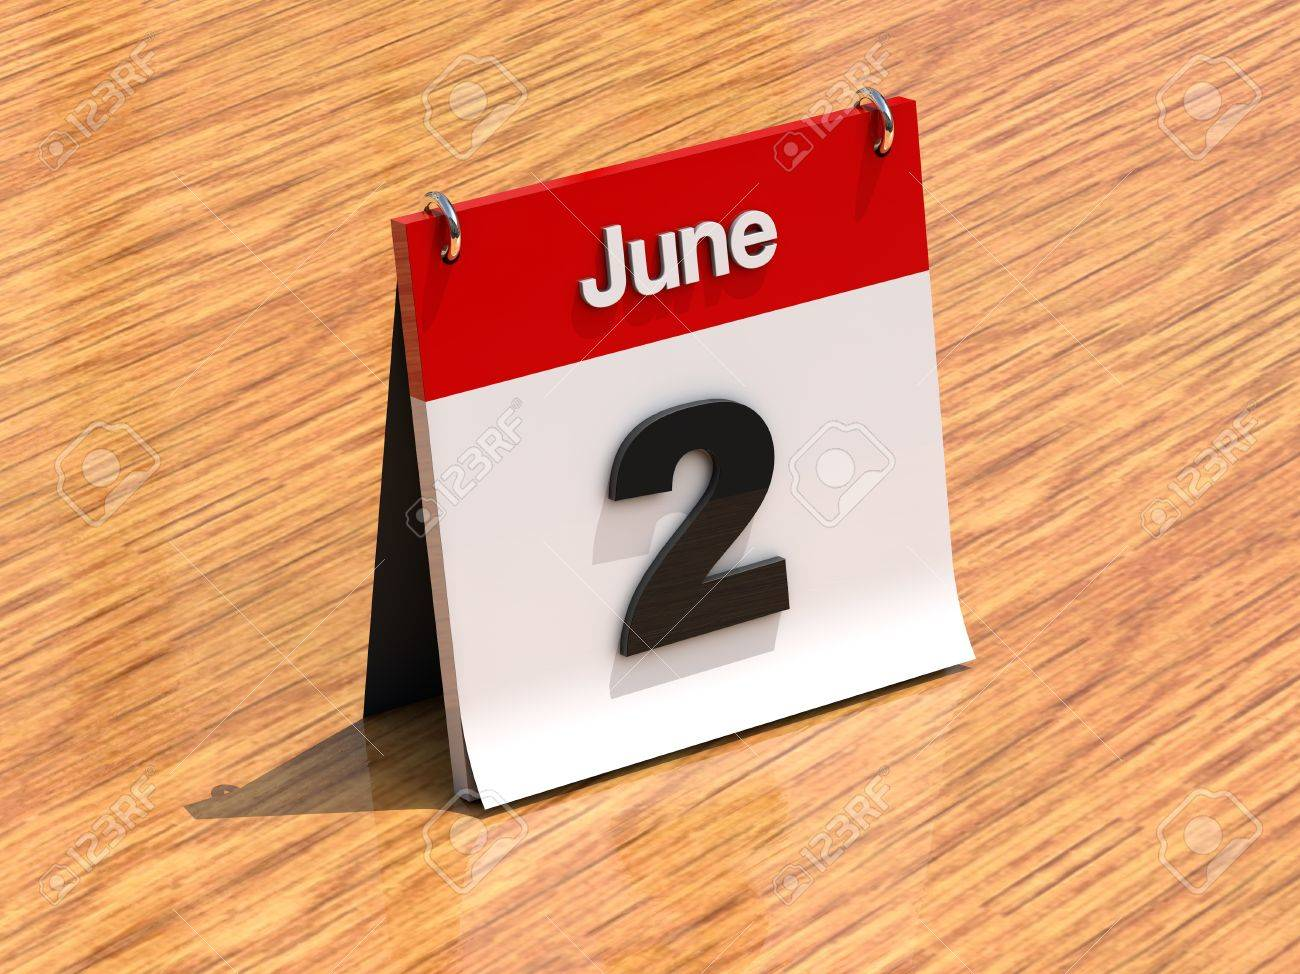 https://i2.wp.com/previews.123rf.com/images/kasiastock/kasiastock1303/kasiastock130300283/18274147-3D-calendar-standing-on-desk-June-2-part-of-a-set-Stock-Photo.jpg